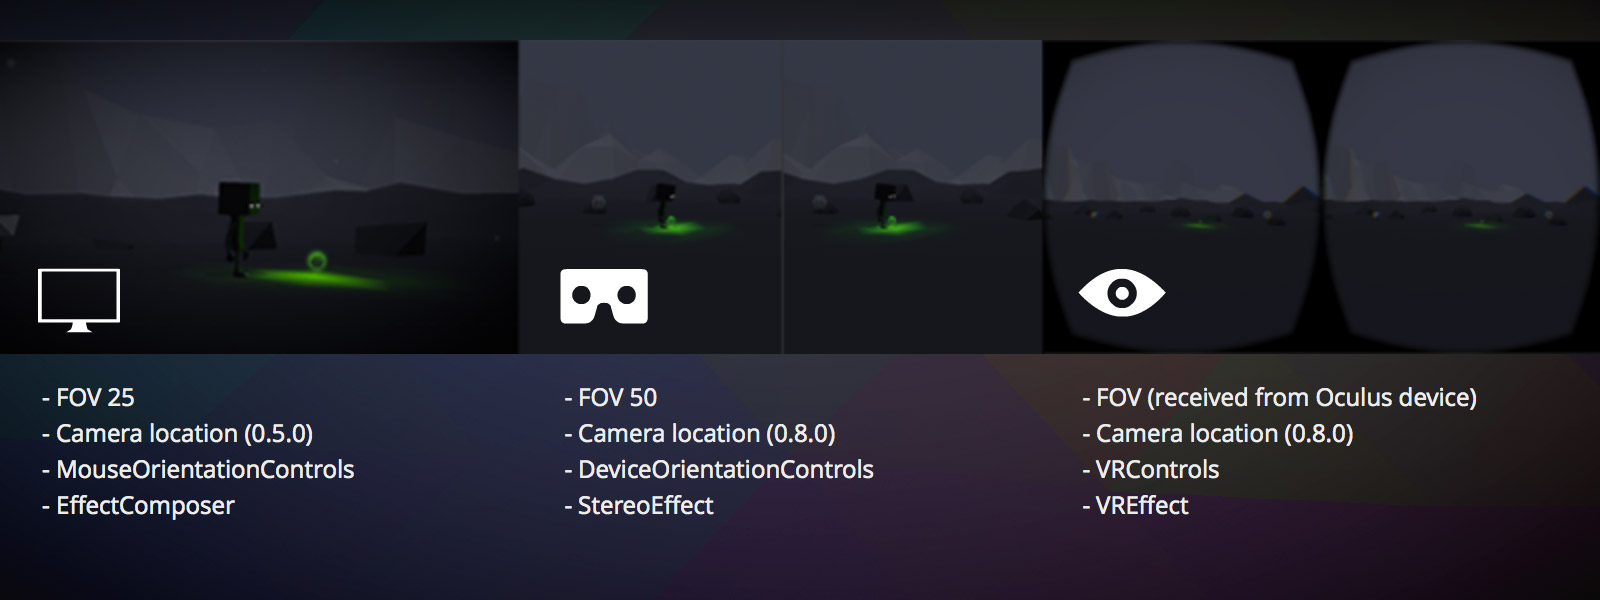 Different settings for each device